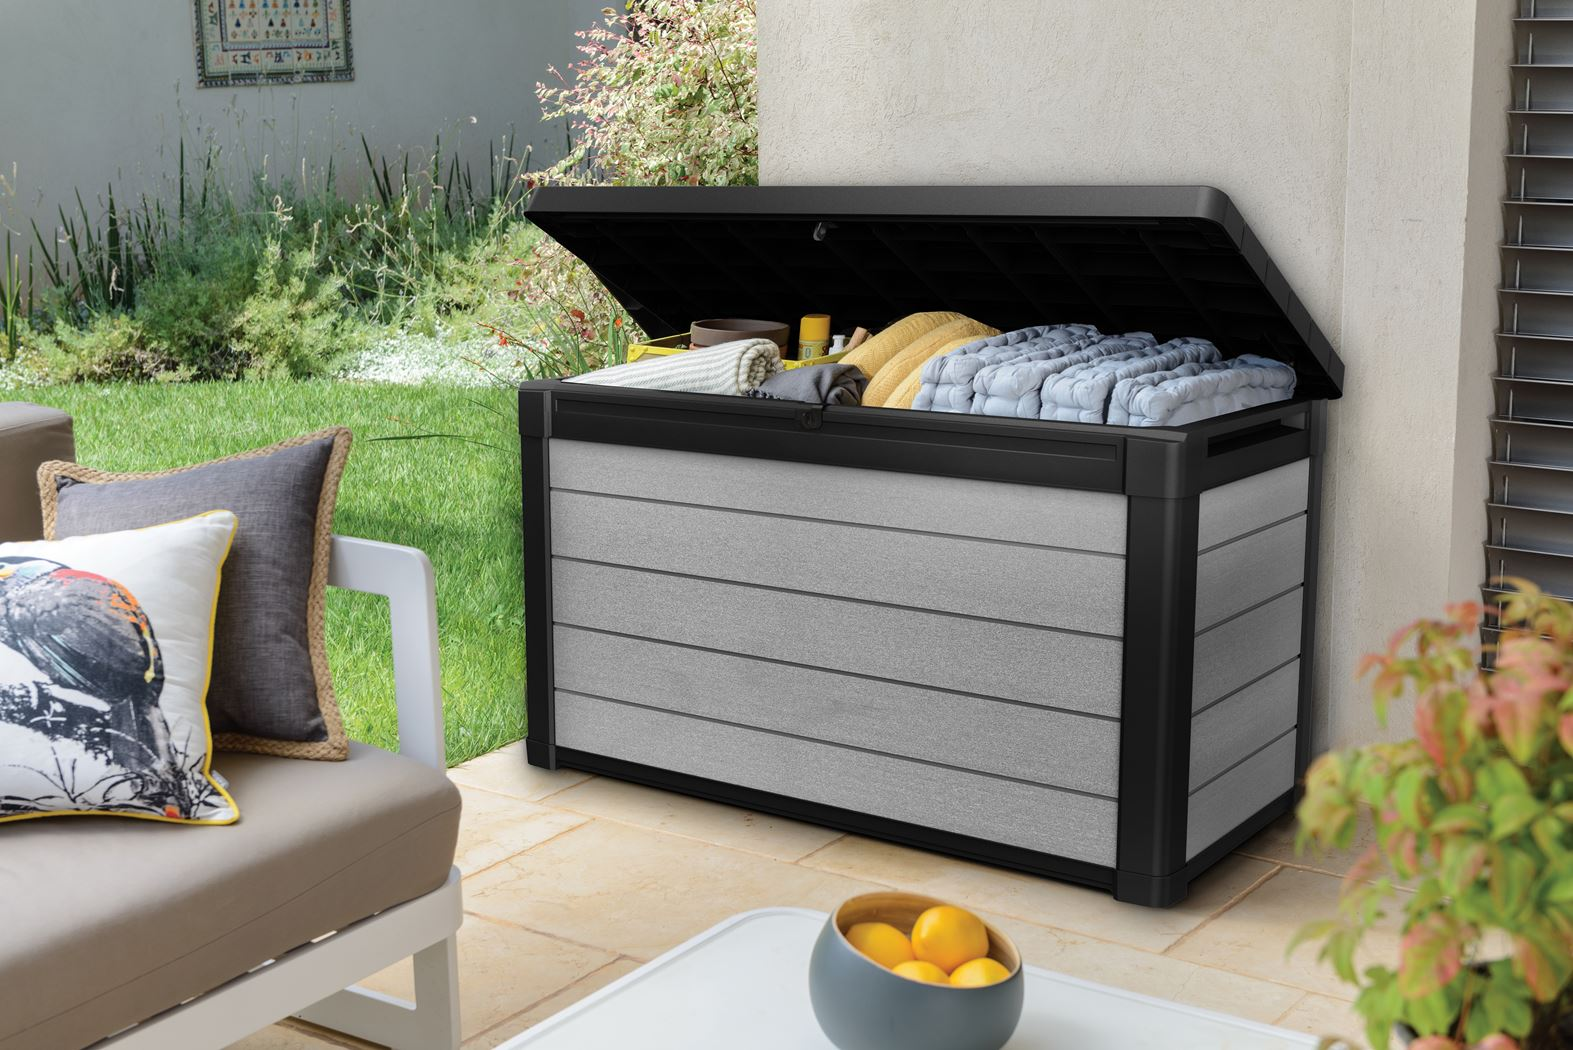 keter storage box denali